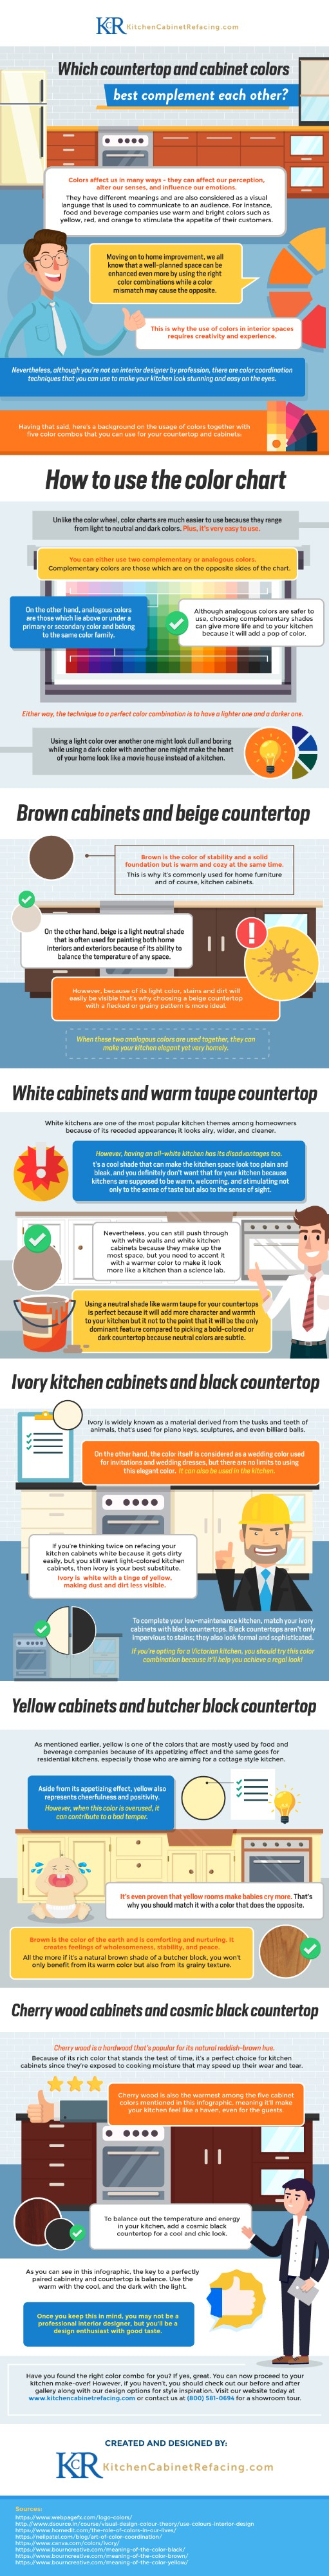 Best Countertop and Cabinet Color Complements [Infographic]